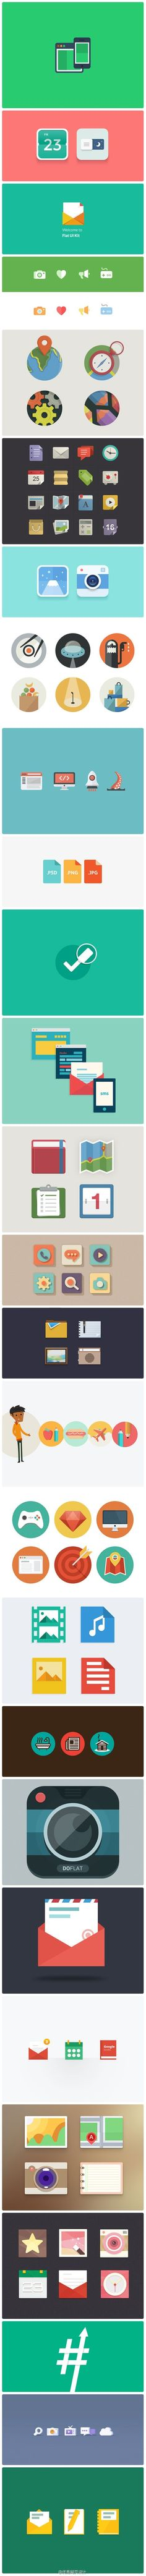 MANY ways to use color, texture, margin, etc in illustrations/icons.